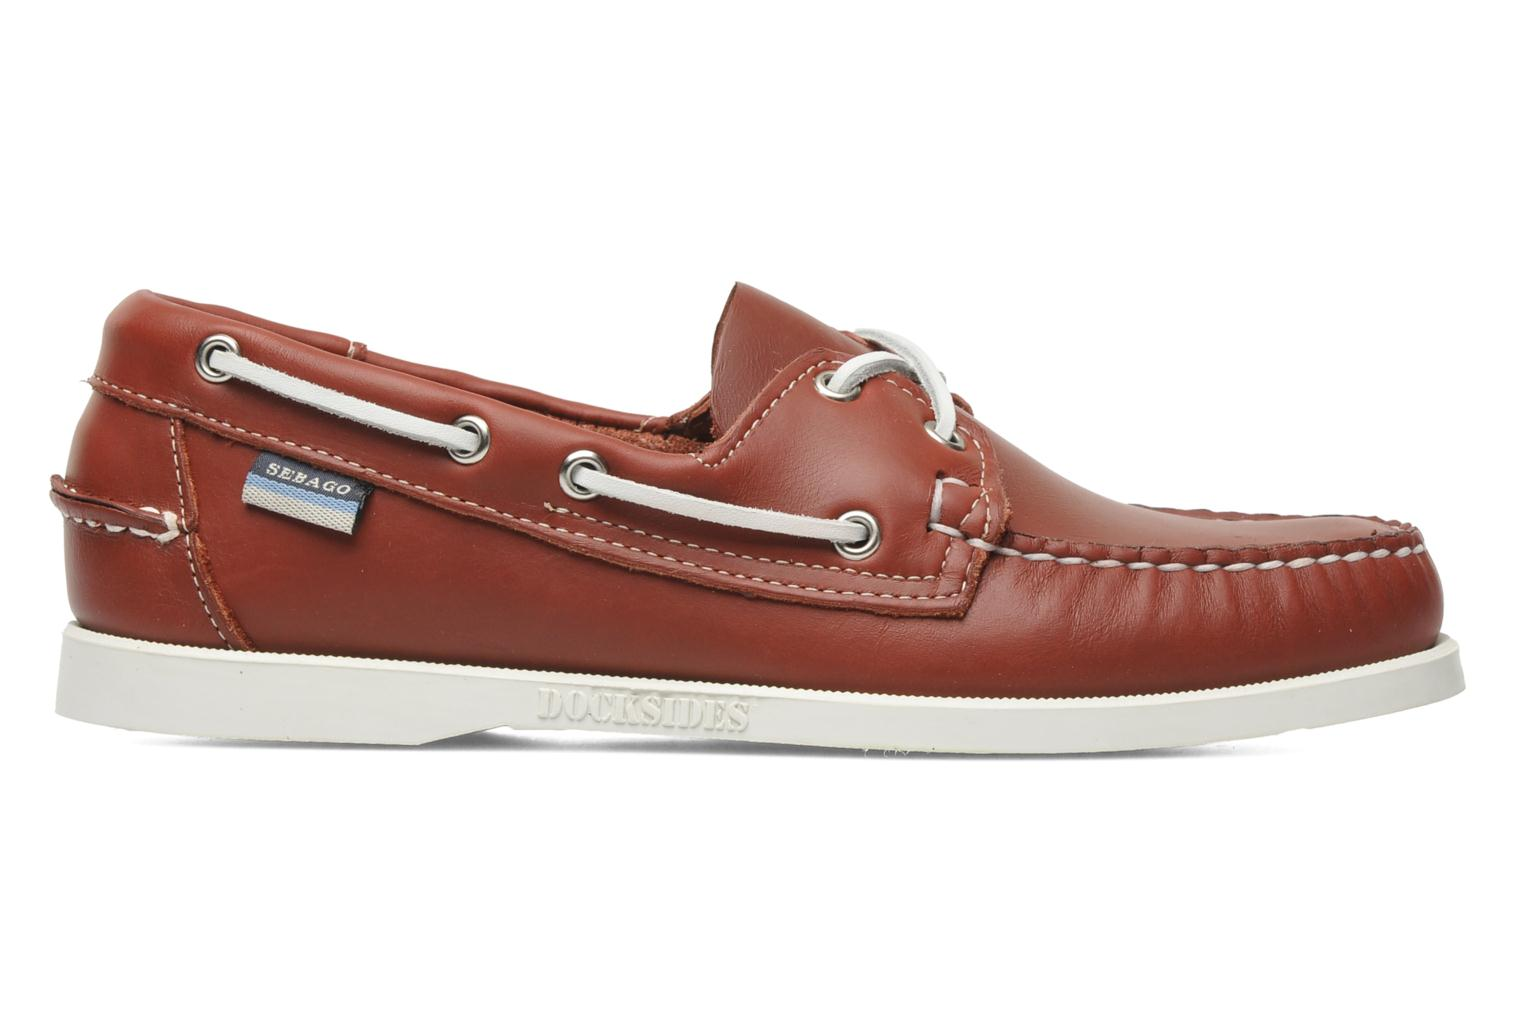 Docksides M Tomatoe Red